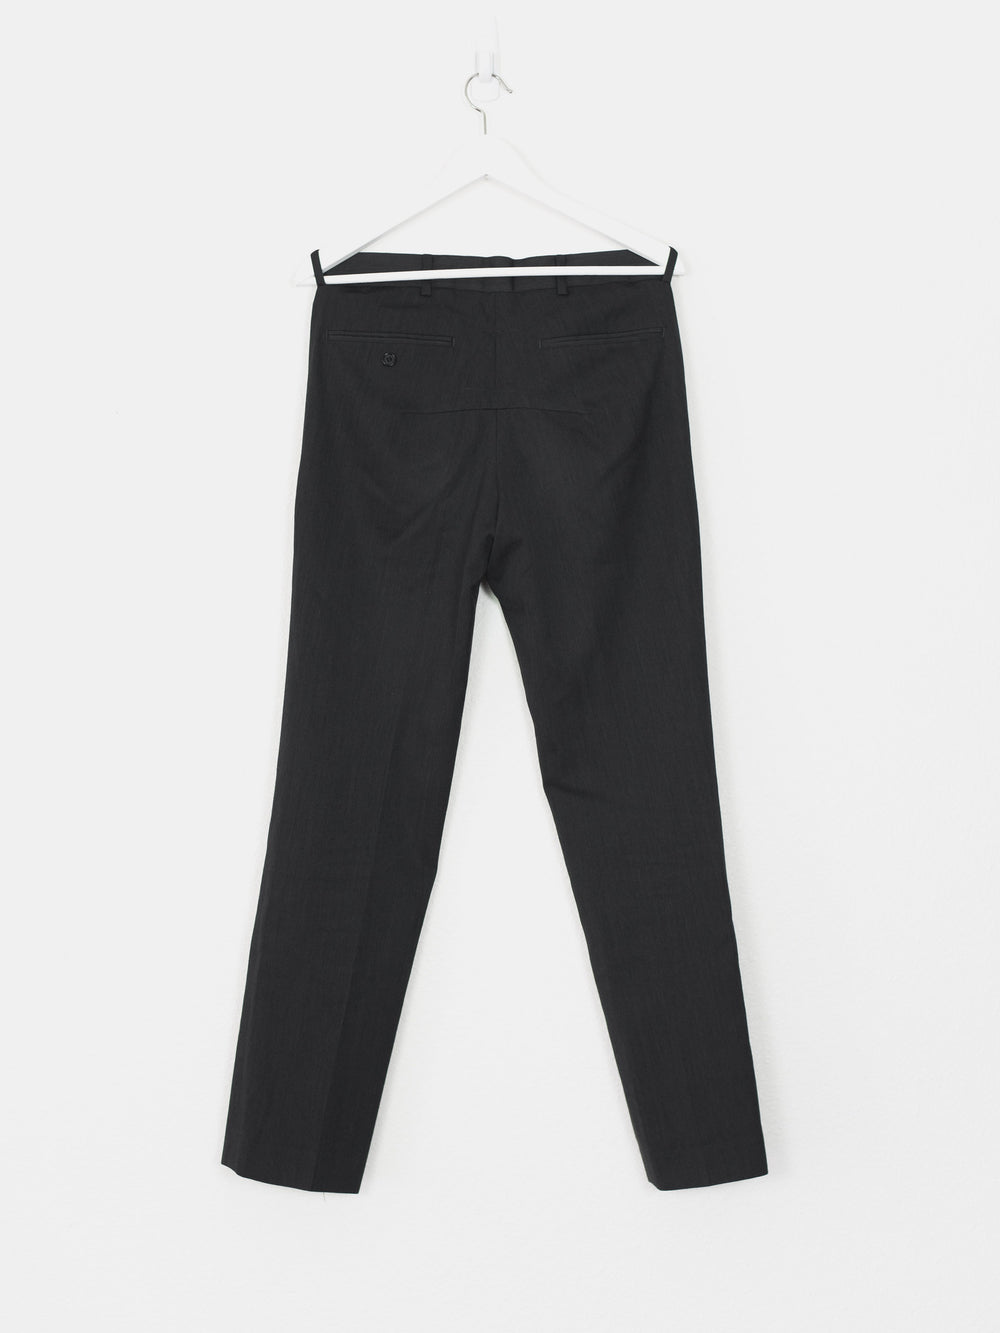 Undercover AW98 Exchange Trousers